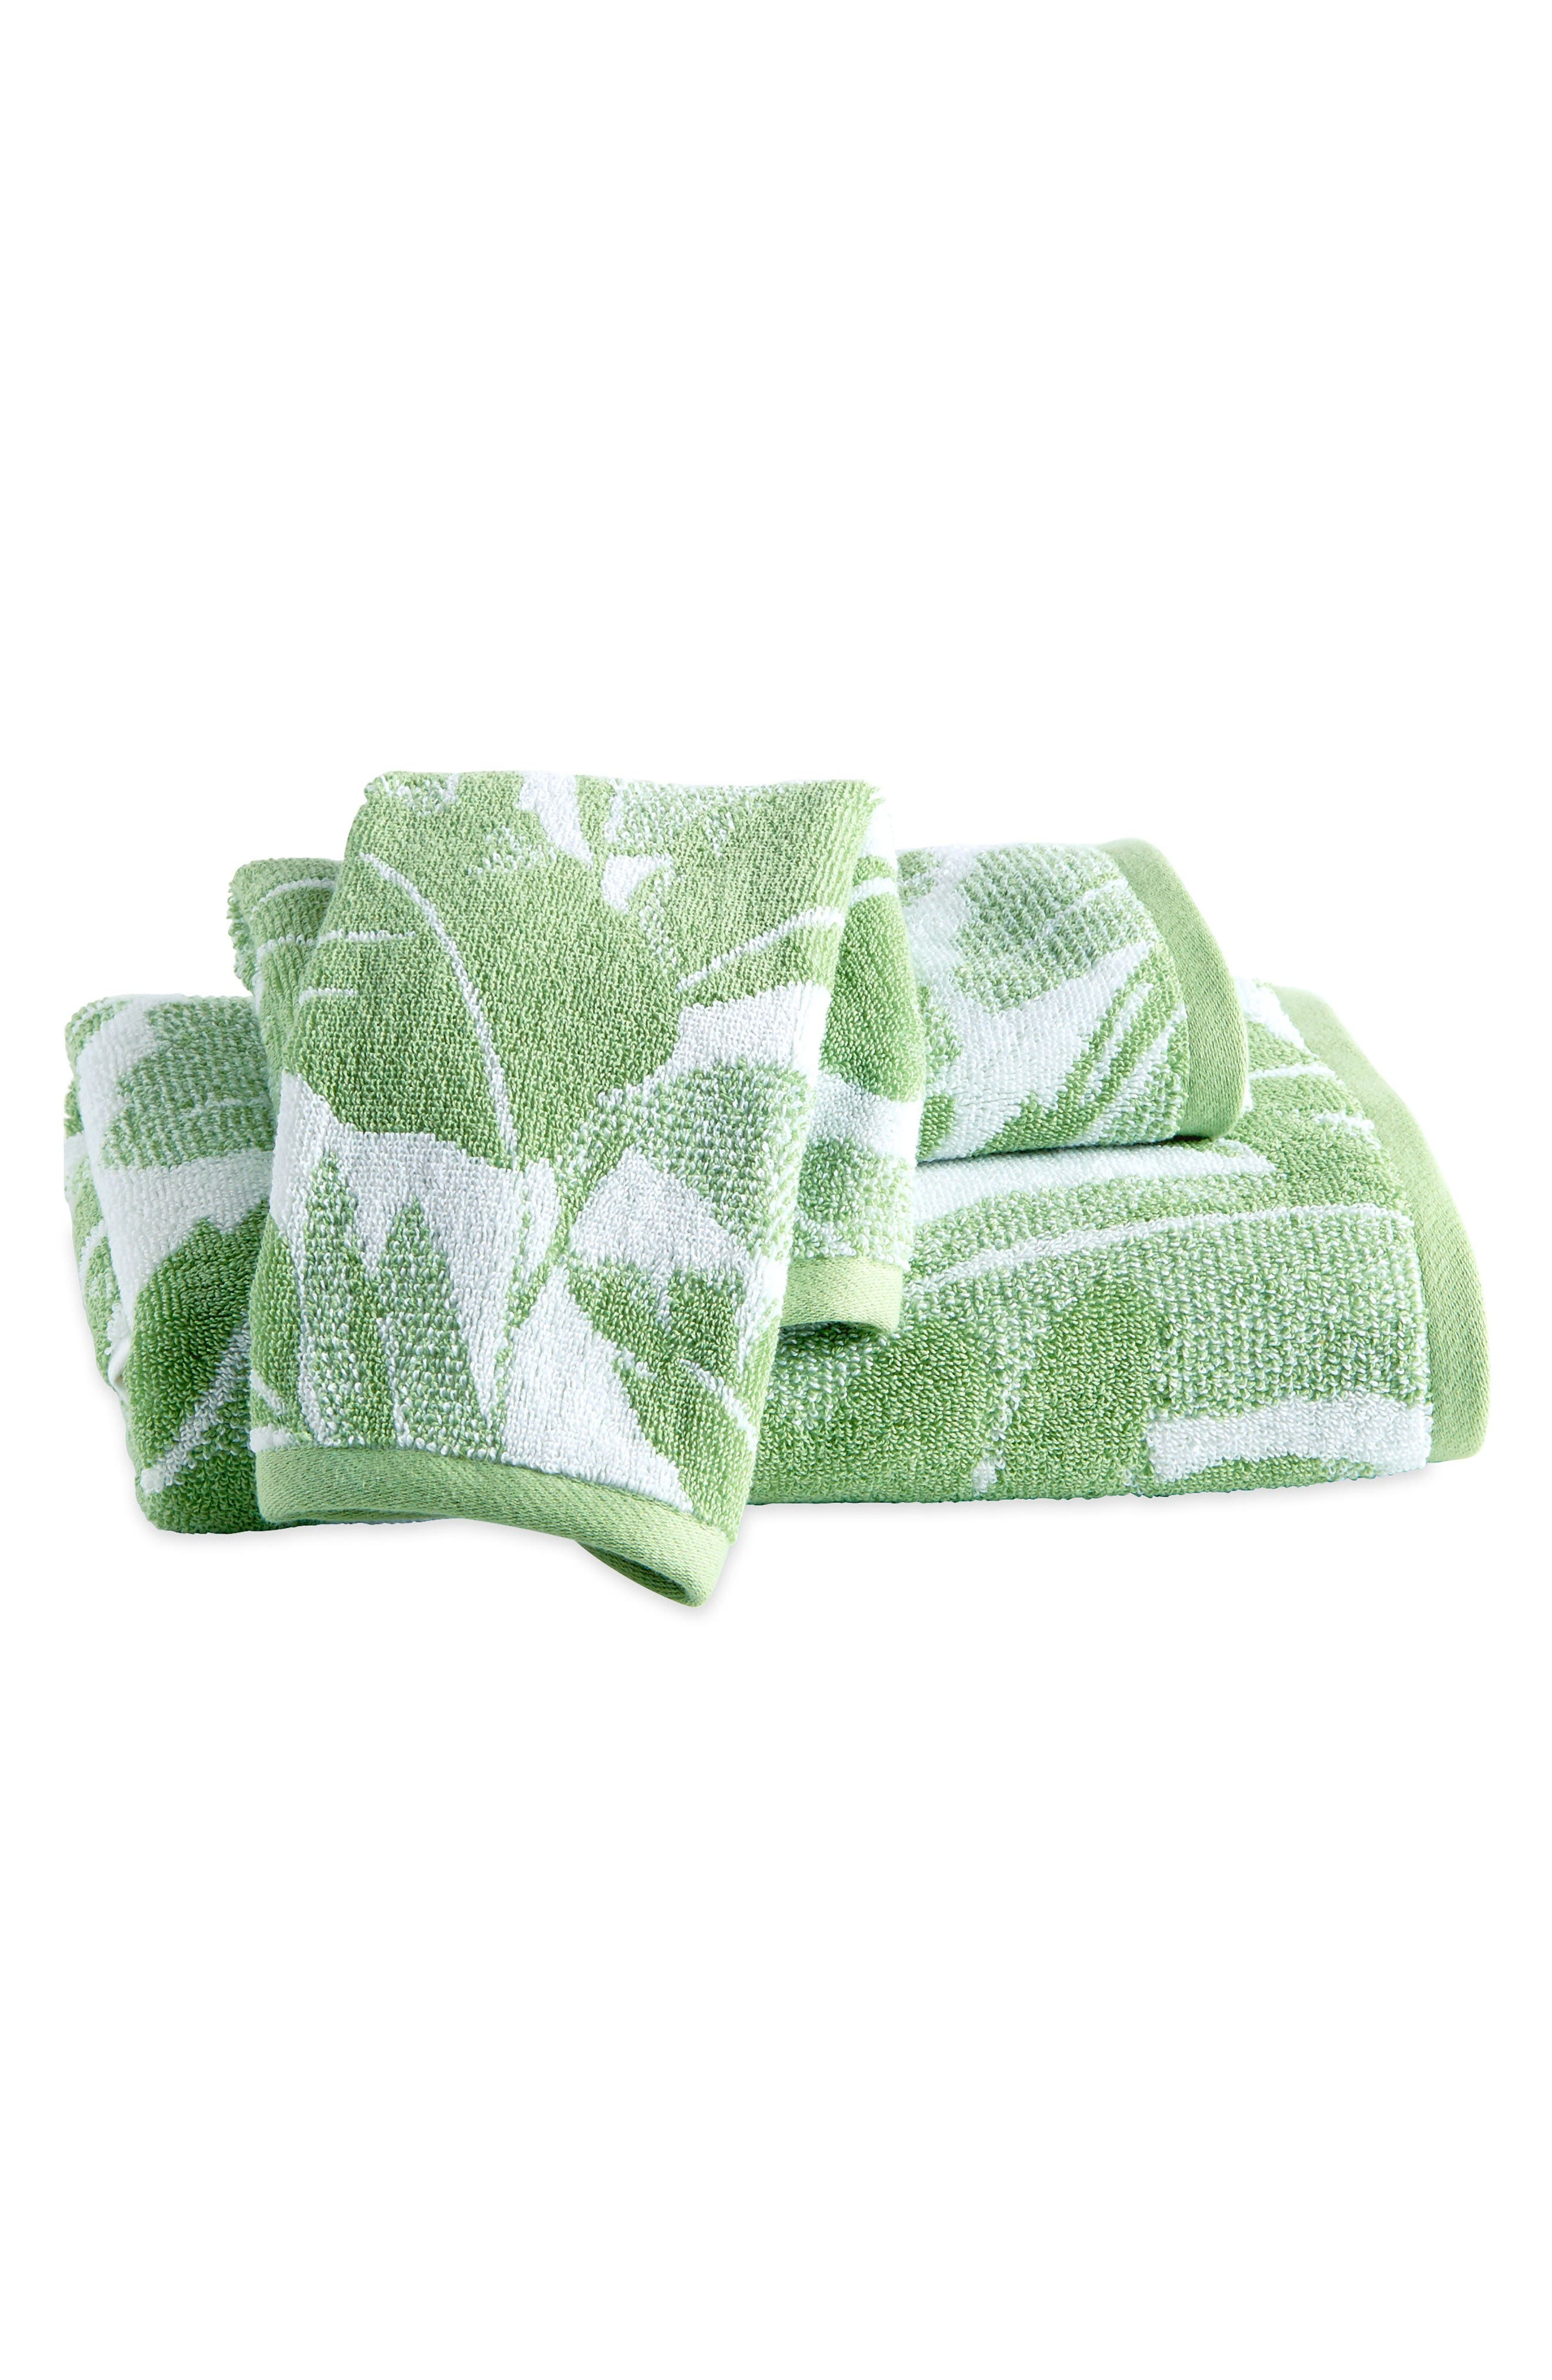 Miami Leaf Bath Towel, Hand Towel and Finger Towel Set,                             Main thumbnail 1, color,                             Green